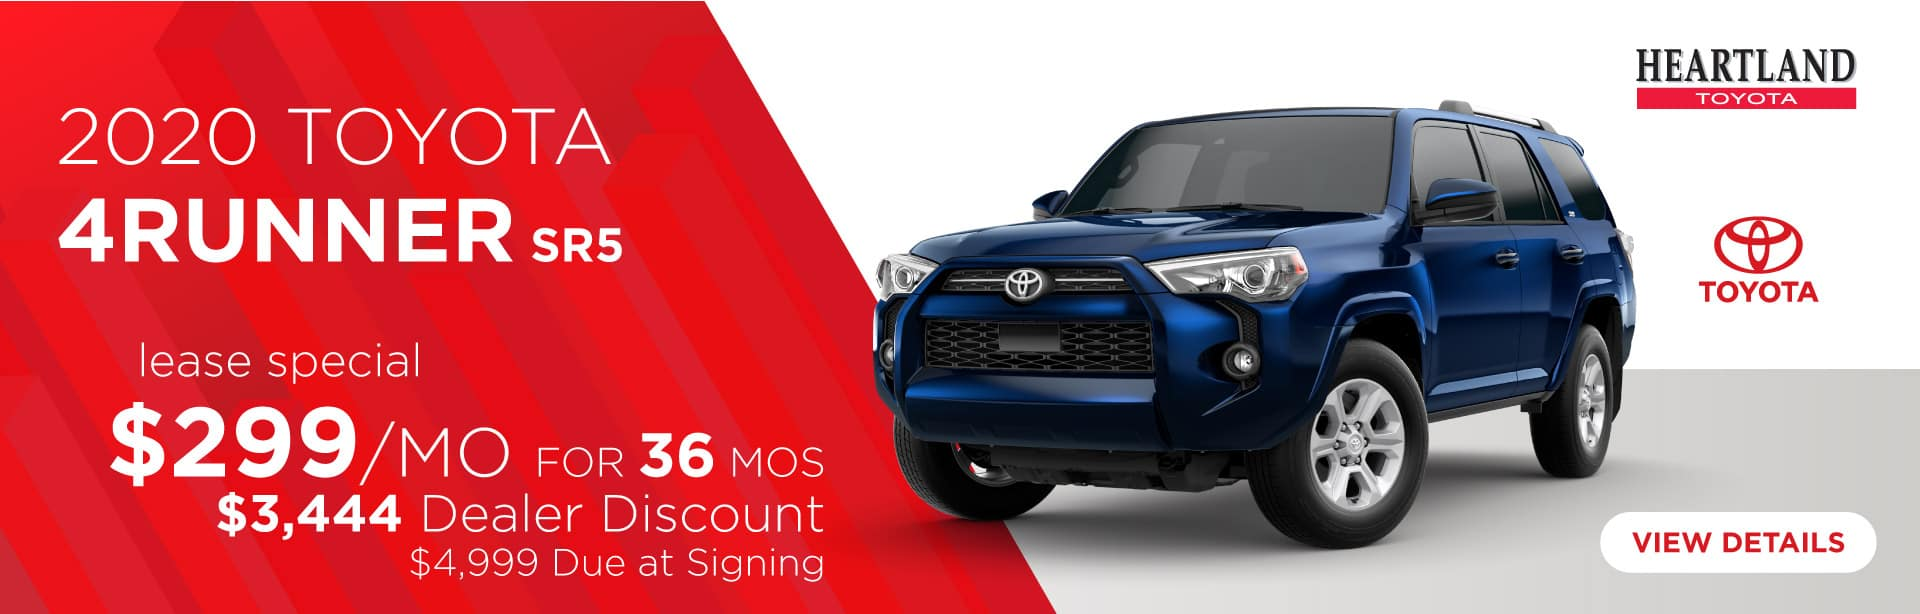 2020 Toyota 4Runner SR5 $299/mo for 36 months* Dealer Discount: $3,444 $4,999 Due at Signing    *Offer valid on 2020 Toyota 4Runner SR5. $299 per month for 36 months. Dealer Discount: $3,444. Lease with $4,999 due at signing; includes a $695 acquisition fee. DEAL #416058. Valid on VIN: JTEBU5JR7L5746620, JTEBU5JR1L5737895. MSRP starting at $38,515. Lease is through TFS. Subject to credit approval. No Security deposit required. Excludes taxes, title, and fees. 36 monthly payments required. Not all lessees will qualify for lowest payment through participating lender. Residency restrictions apply. Lessee responsible for mileage over 10,000 miles per year at $0.15/mile per year. Option to purchase at lease end. A negotiable dealer documentary service fee of up to $150 may be added to the sale price or capitalized cost. Offer expires 2/3/2020.